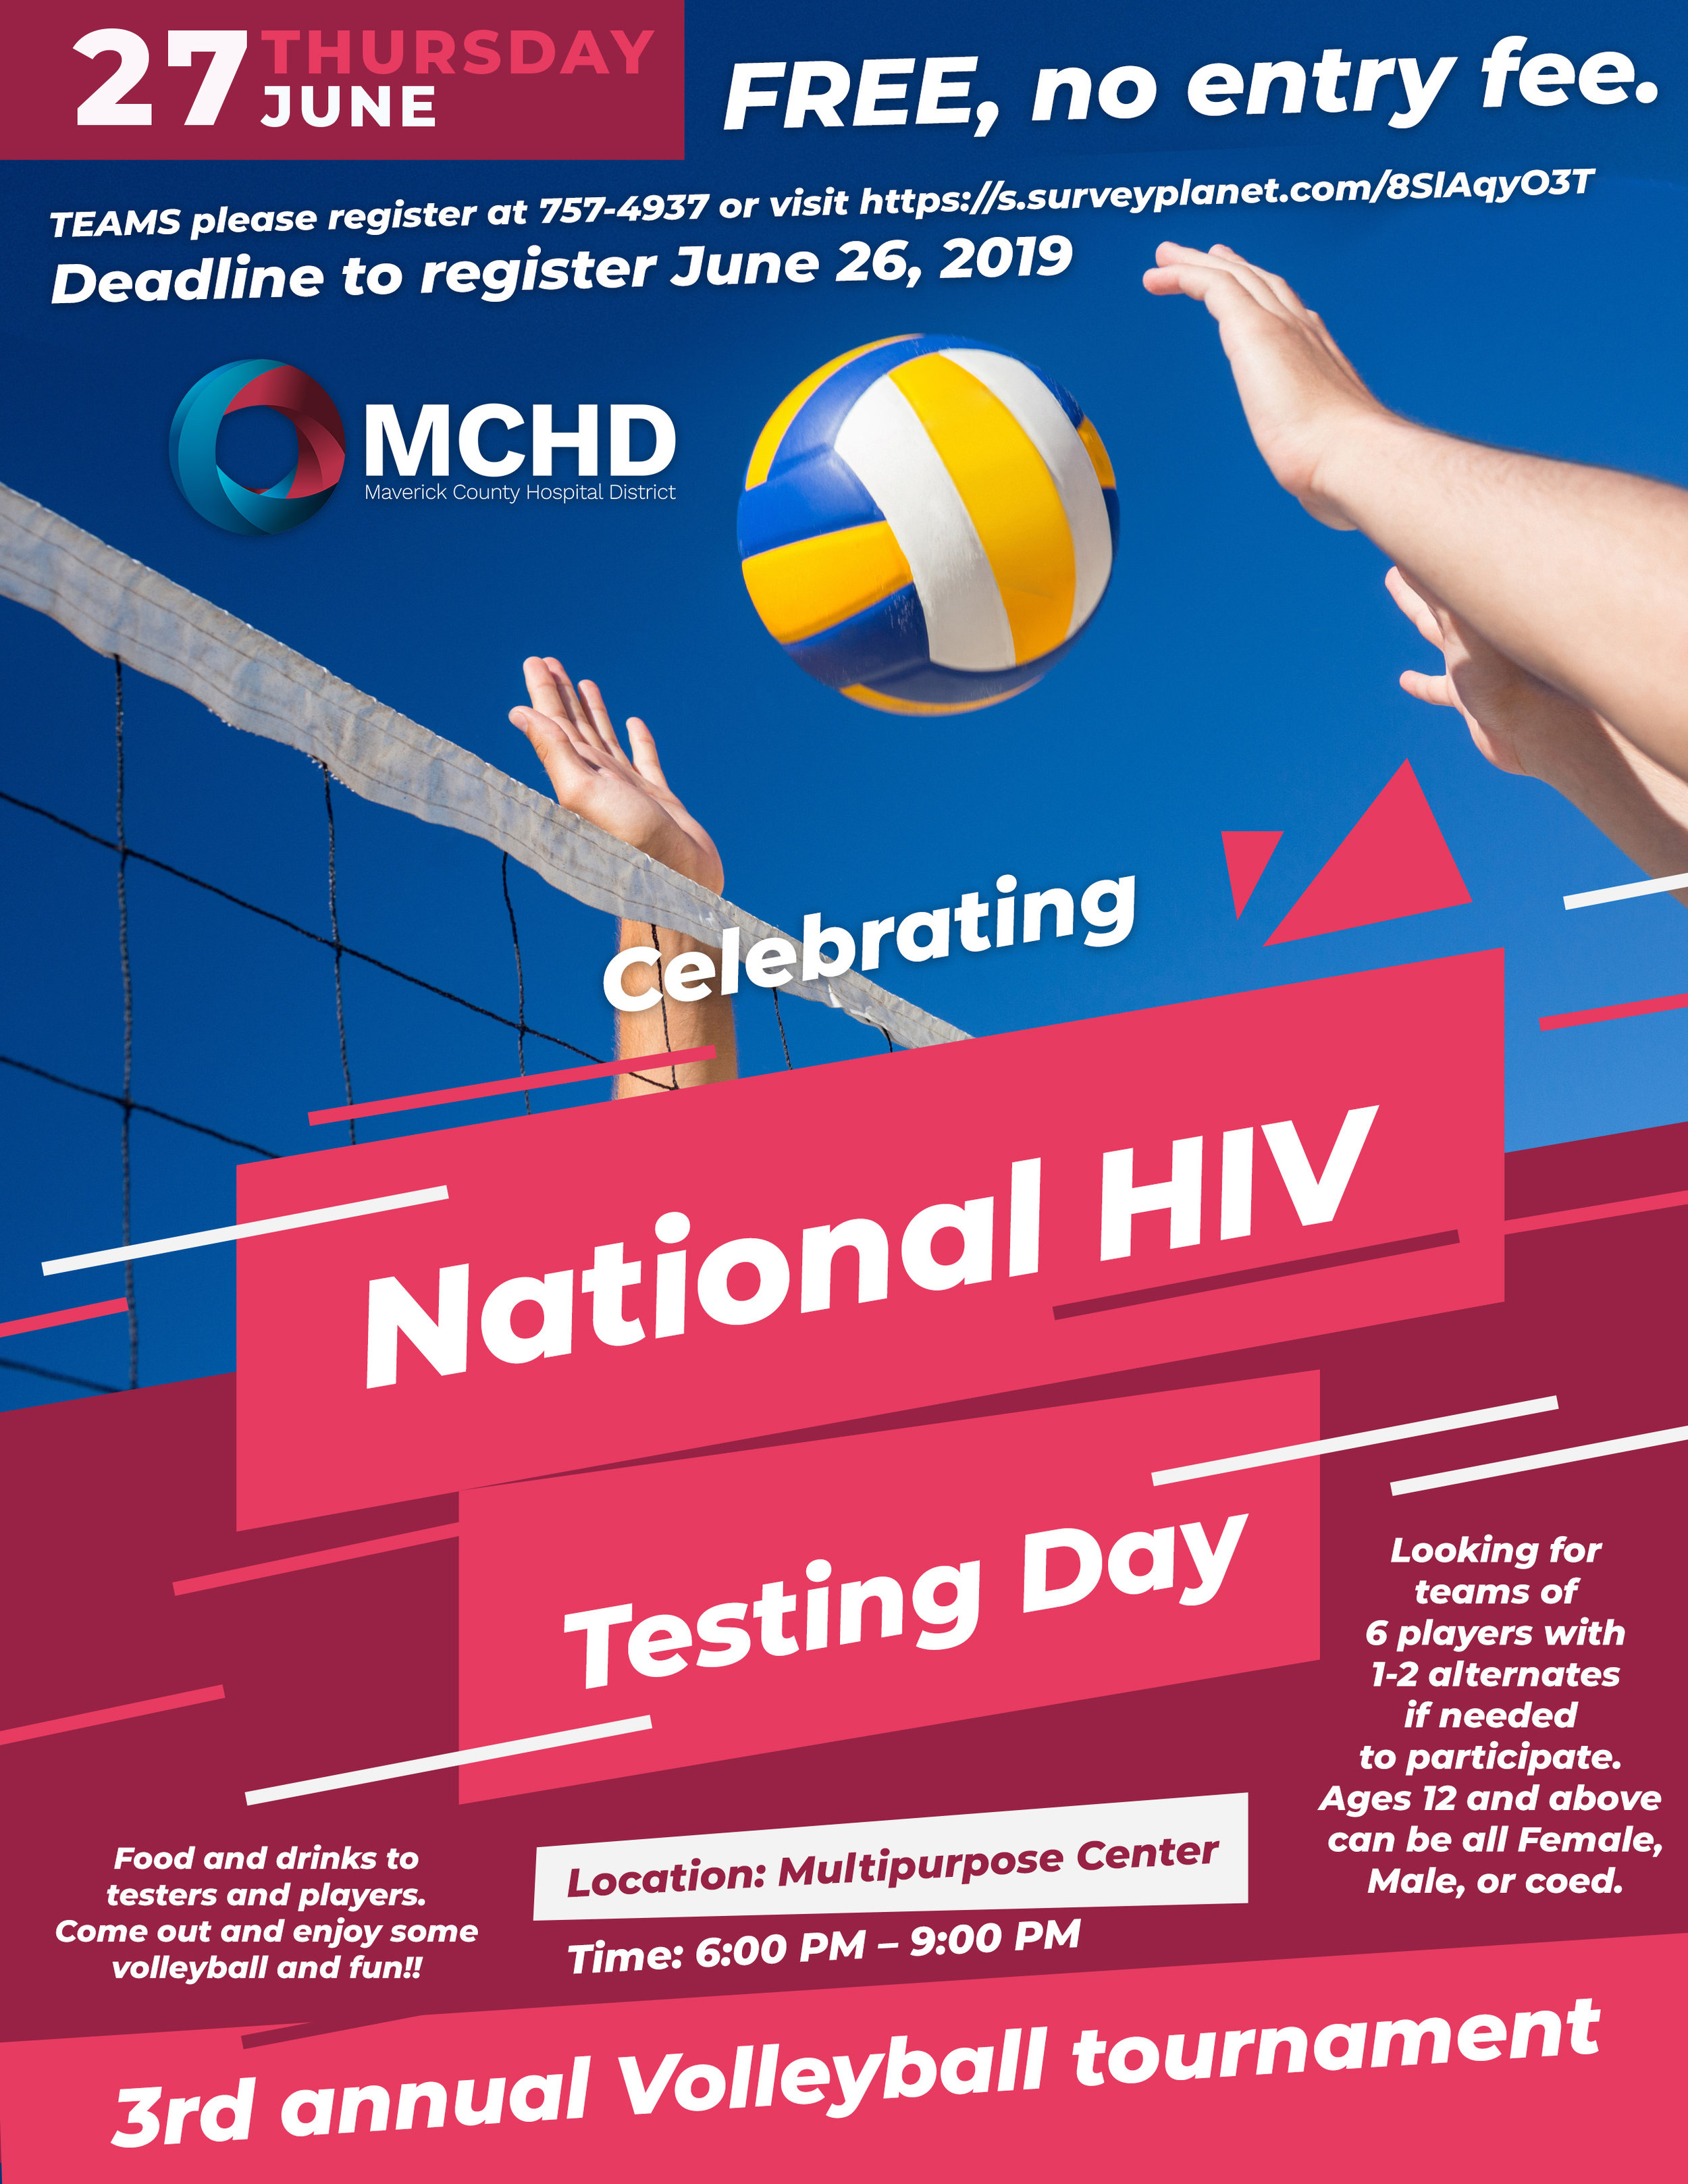 National-HIV-Testing-Day-2019.jpg